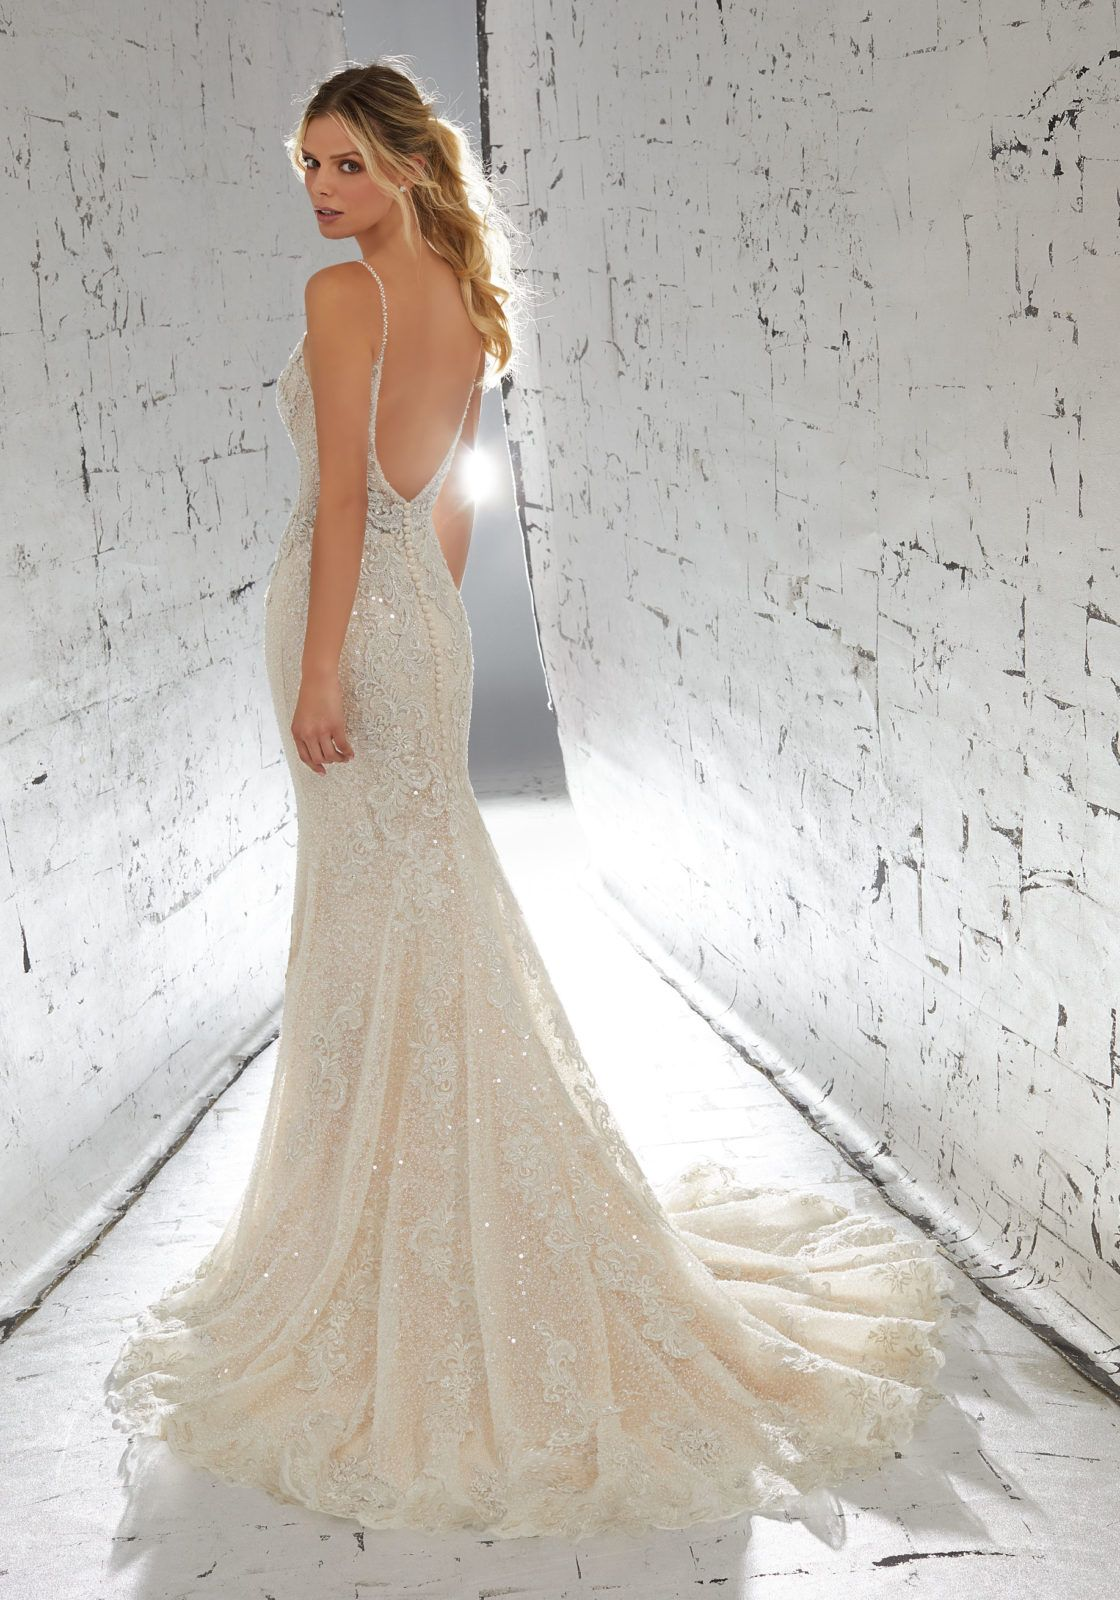 Mori lee madeline gardner wedding dress  Laurette Wedding Dress  AF Couture Fall u  Morilee by Madeline